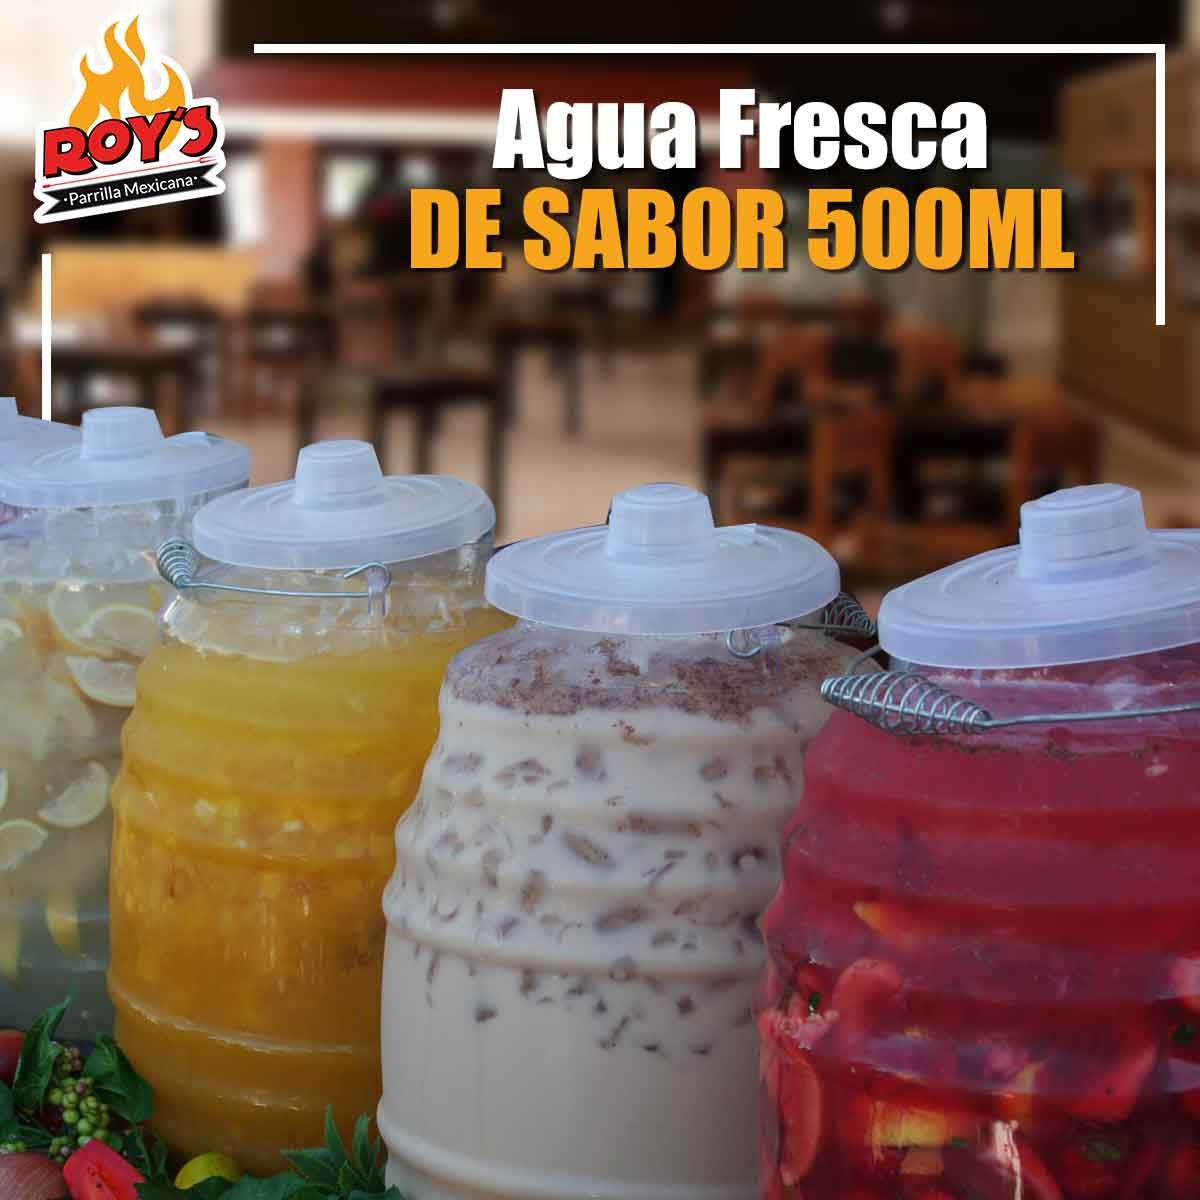 Aguas Frescas de Sabor 500ml.